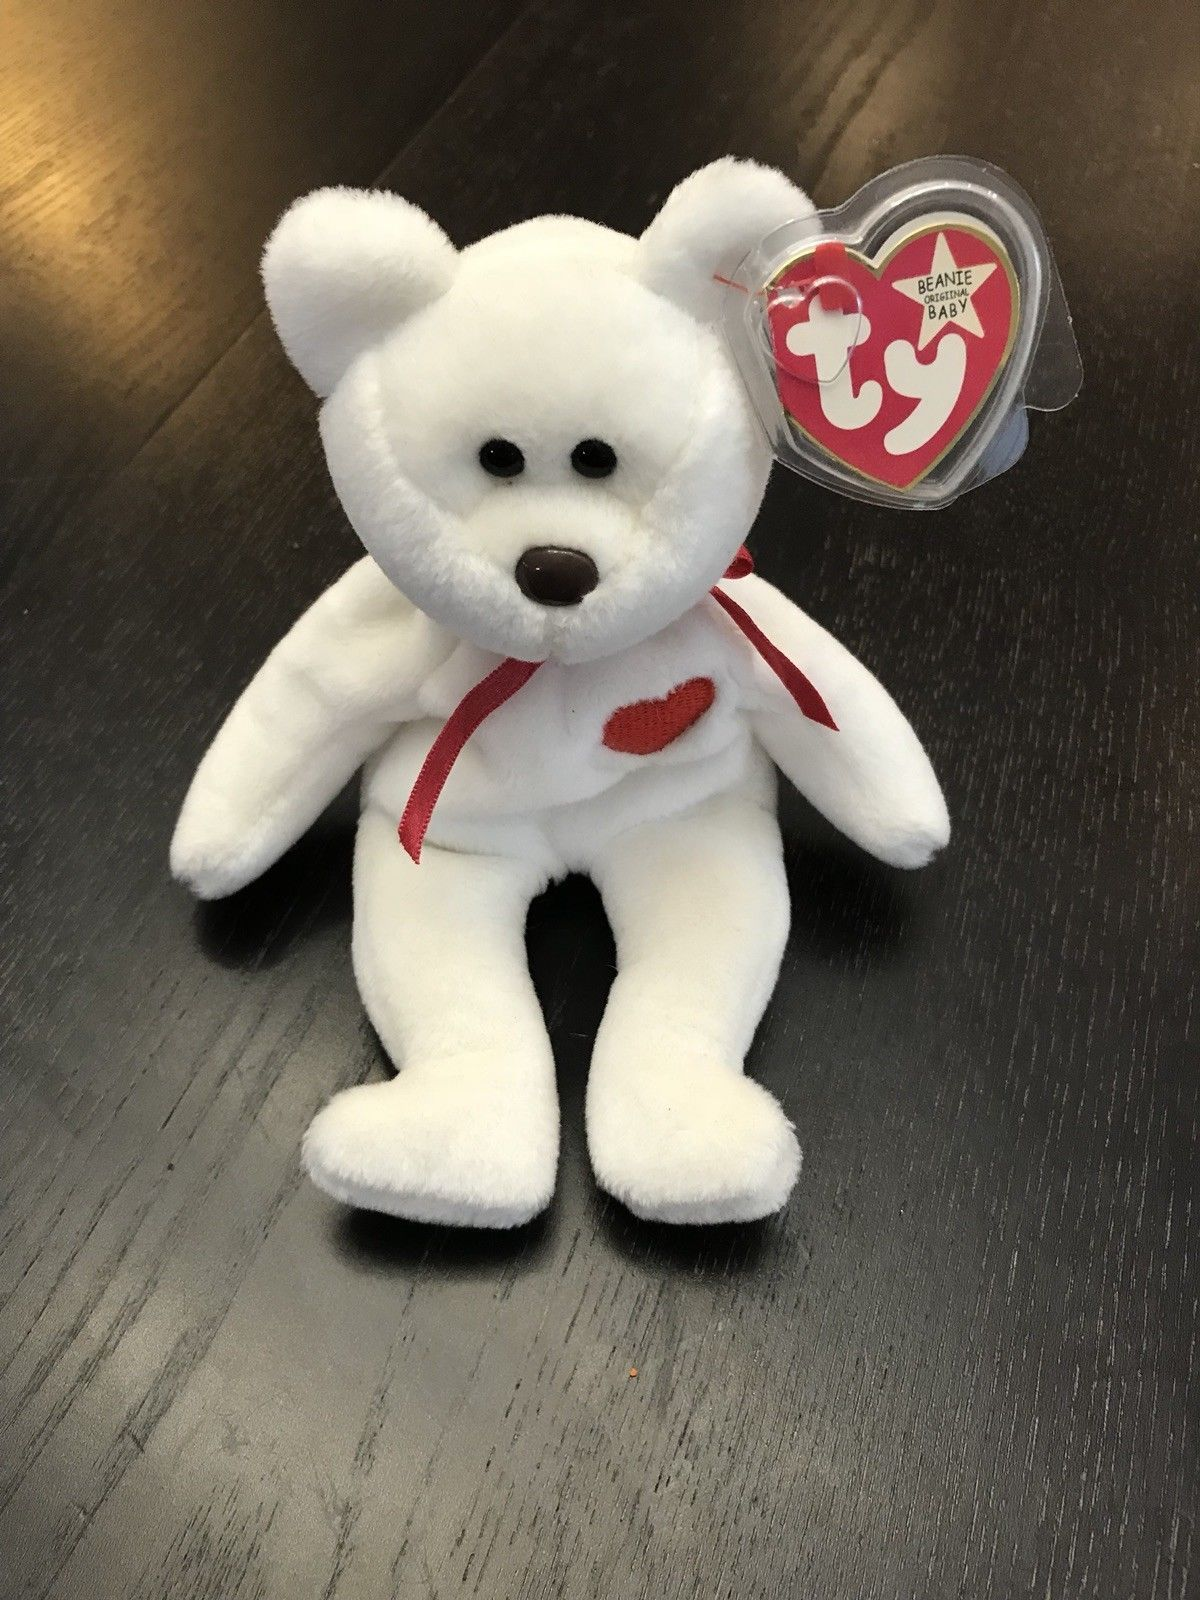 The 20 Expensive Collectible Beanie Babies Will Make You Rich - Most Valuable  Beanie Babies a9b6c20d562a